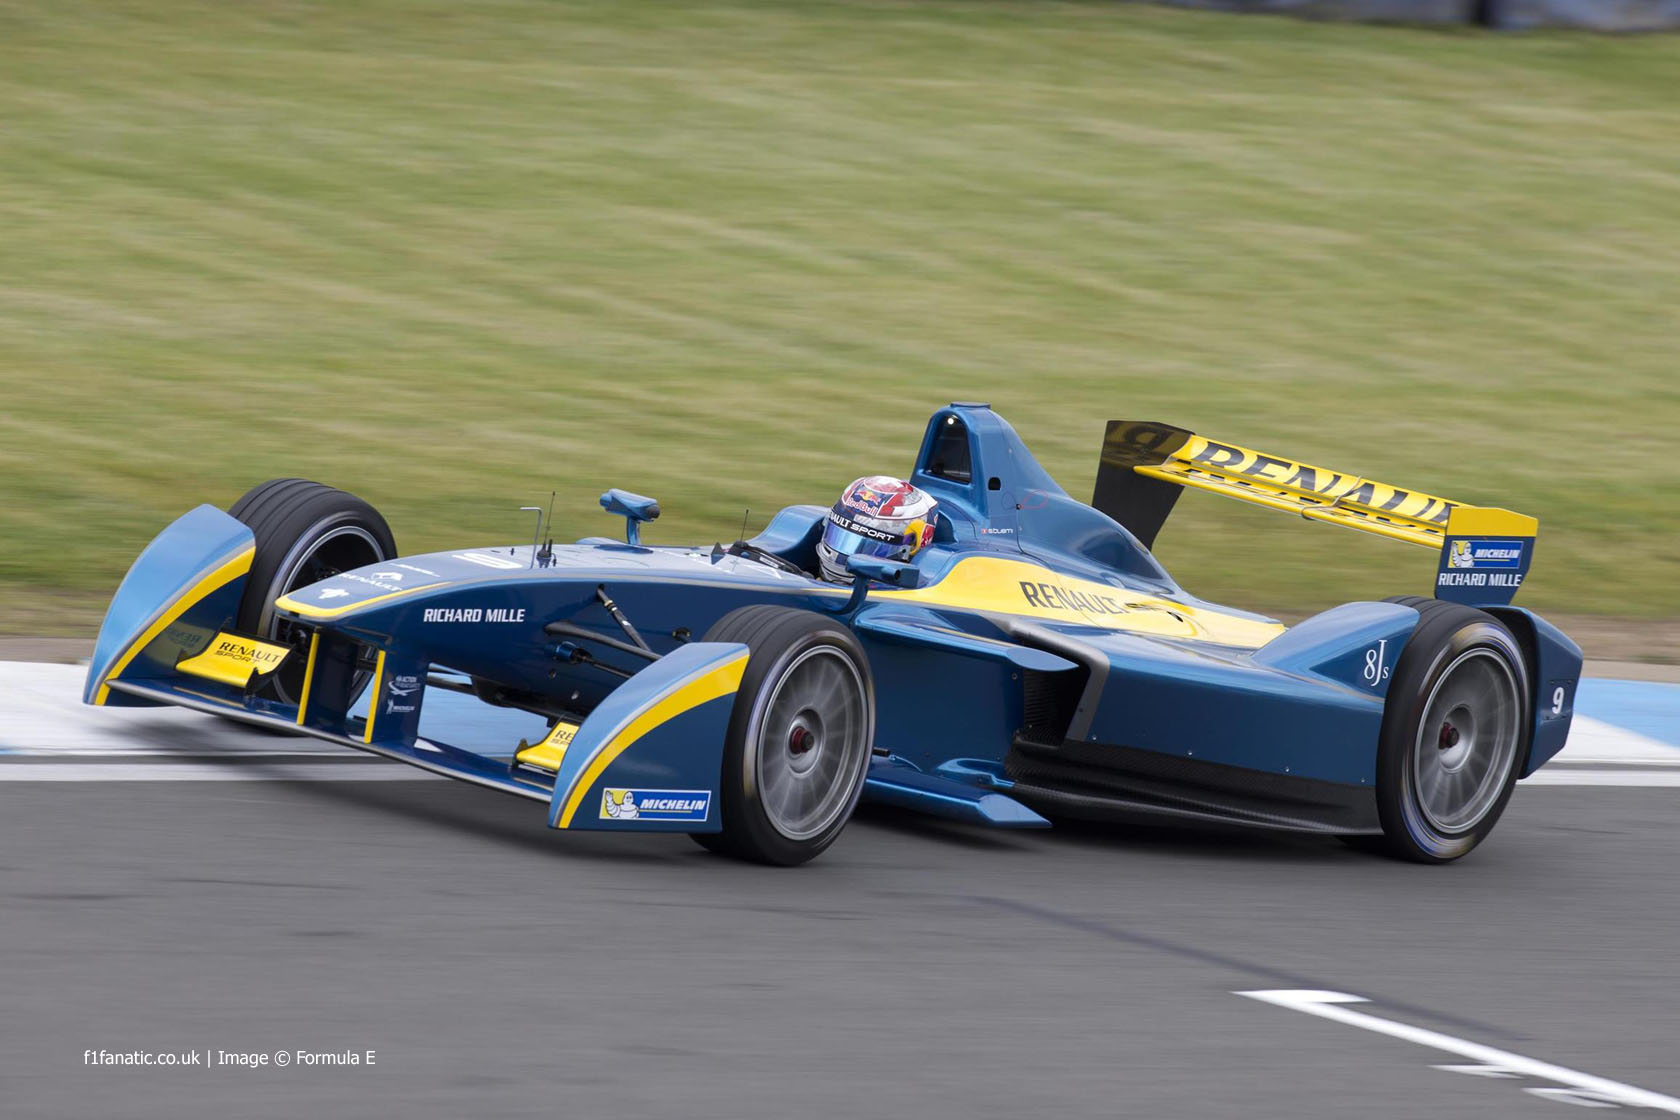 http://www.f1fanatic.co.uk/wp-content/uploads/2014/07/buemi.jpg